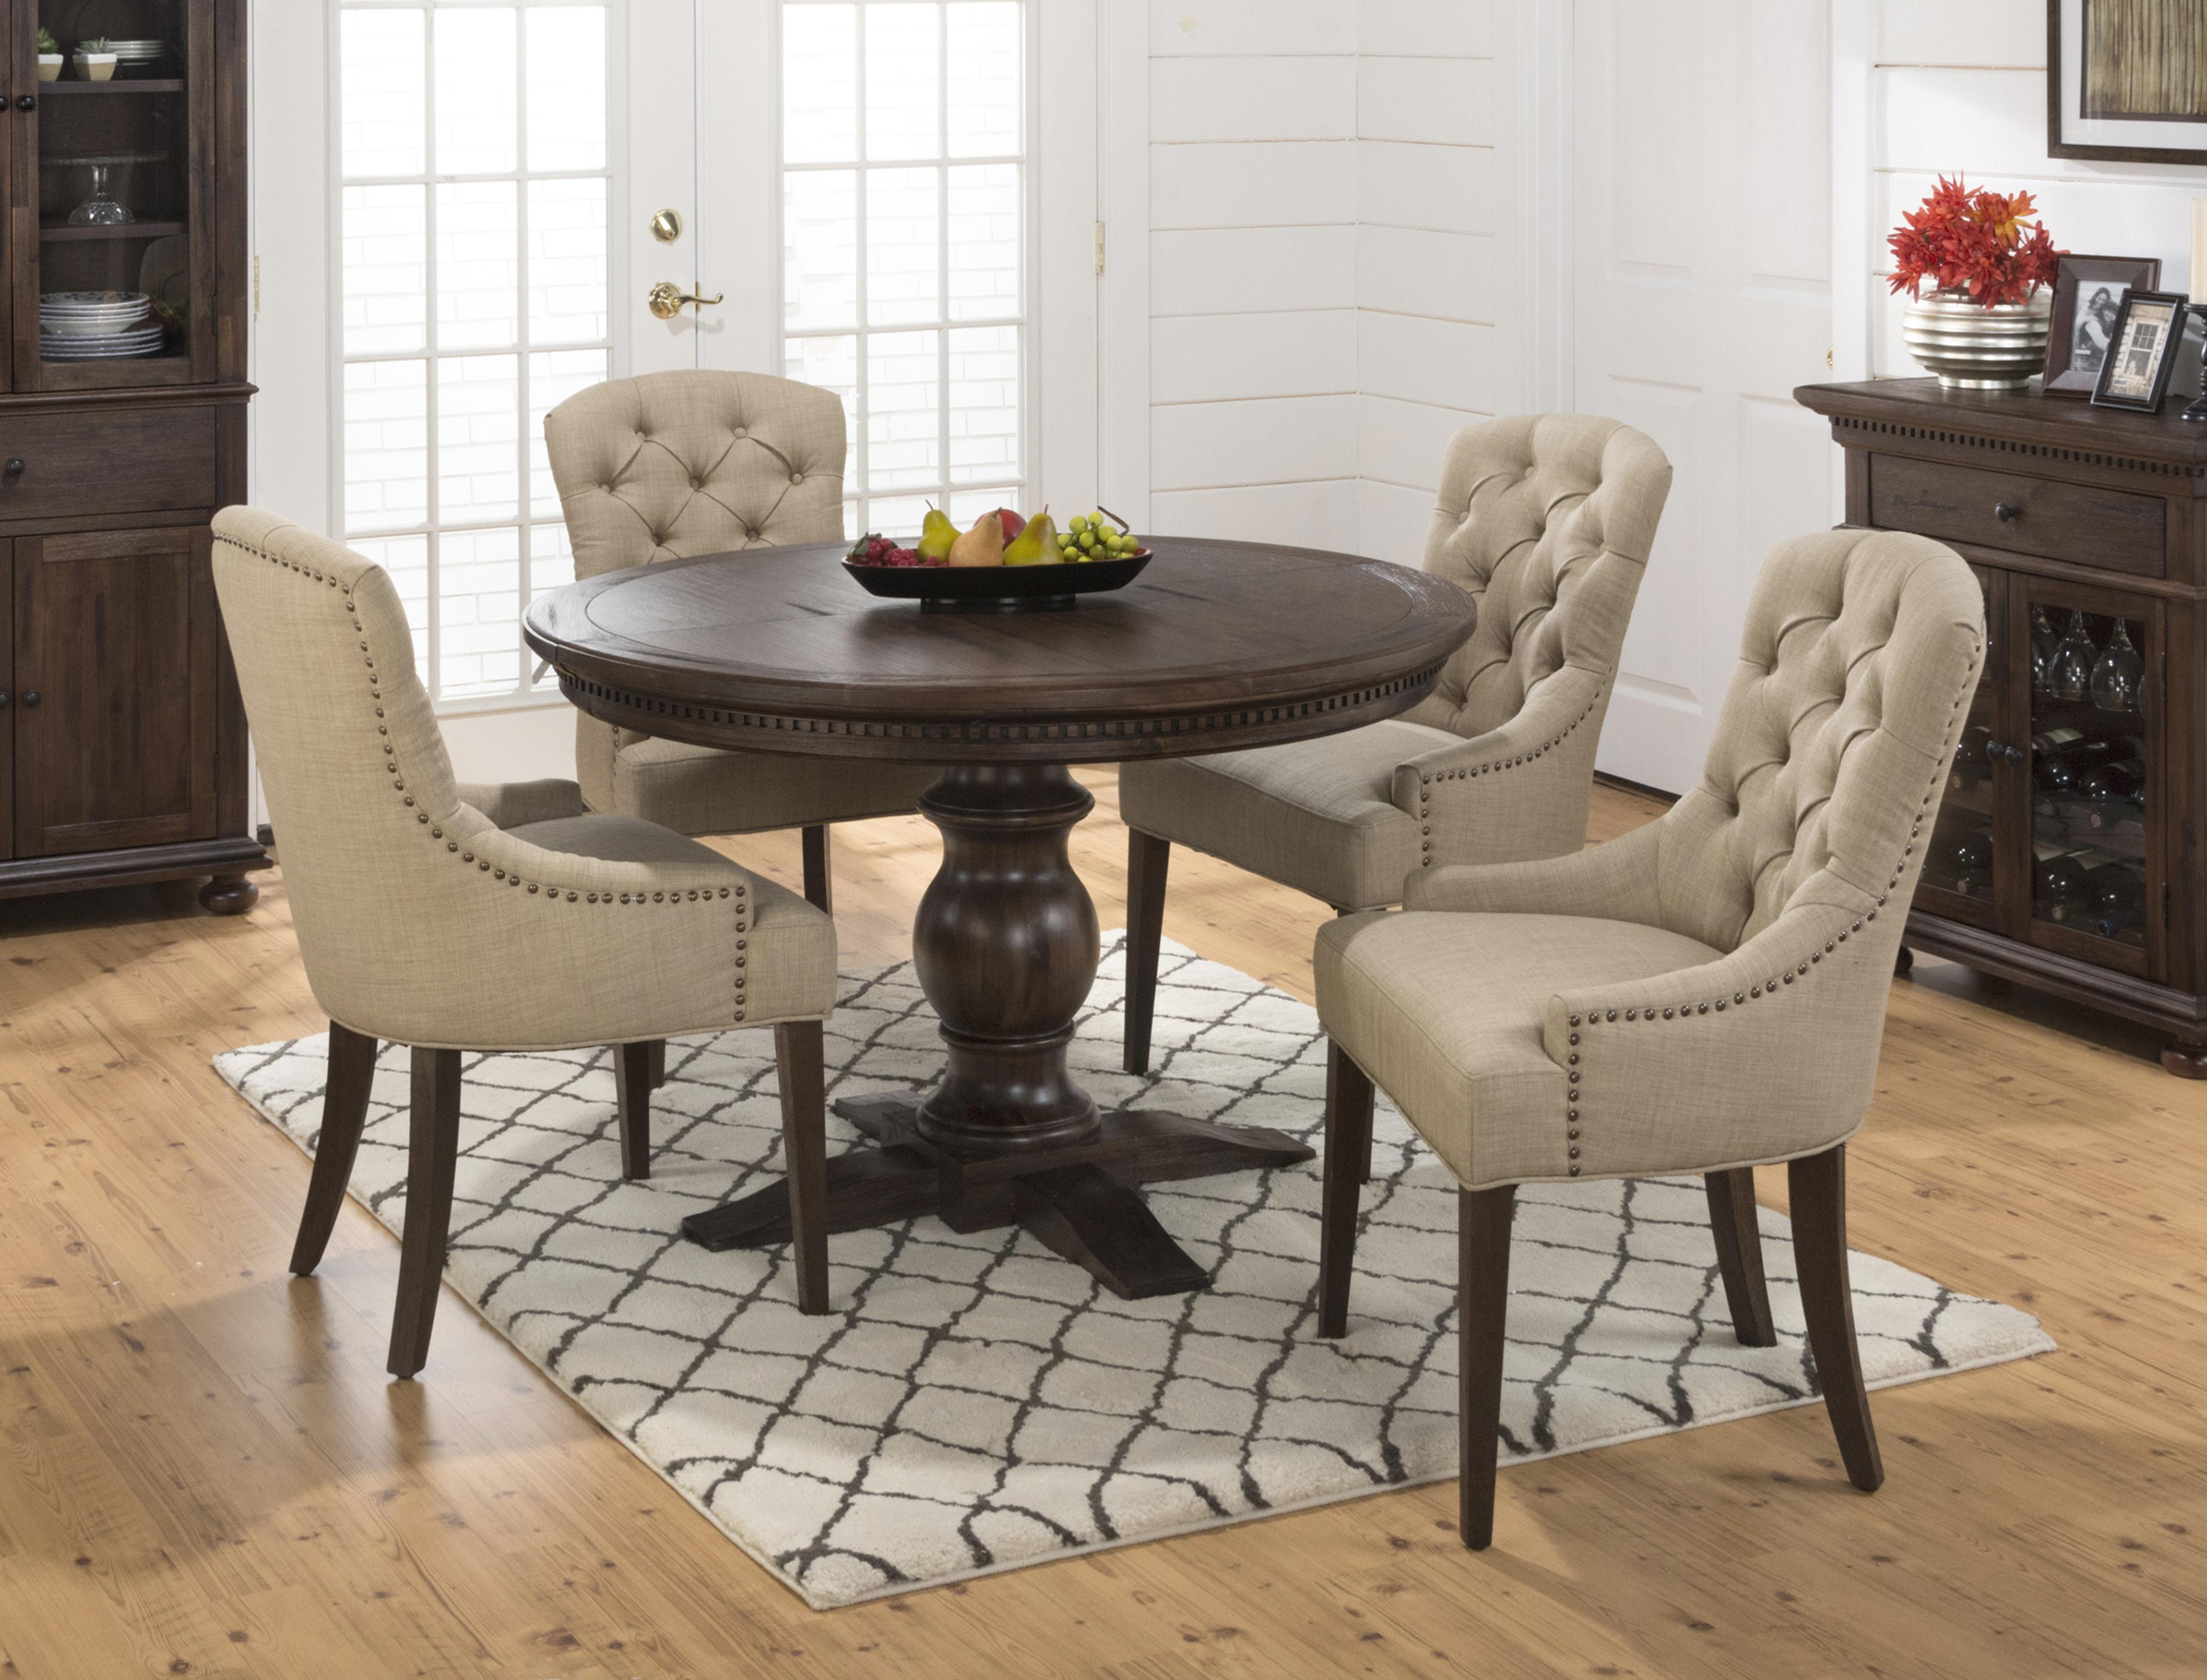 Jofran Evelyn 5PC Table and Upholstered Chair Set - Item Number: 678-60B+60T+4x212KD